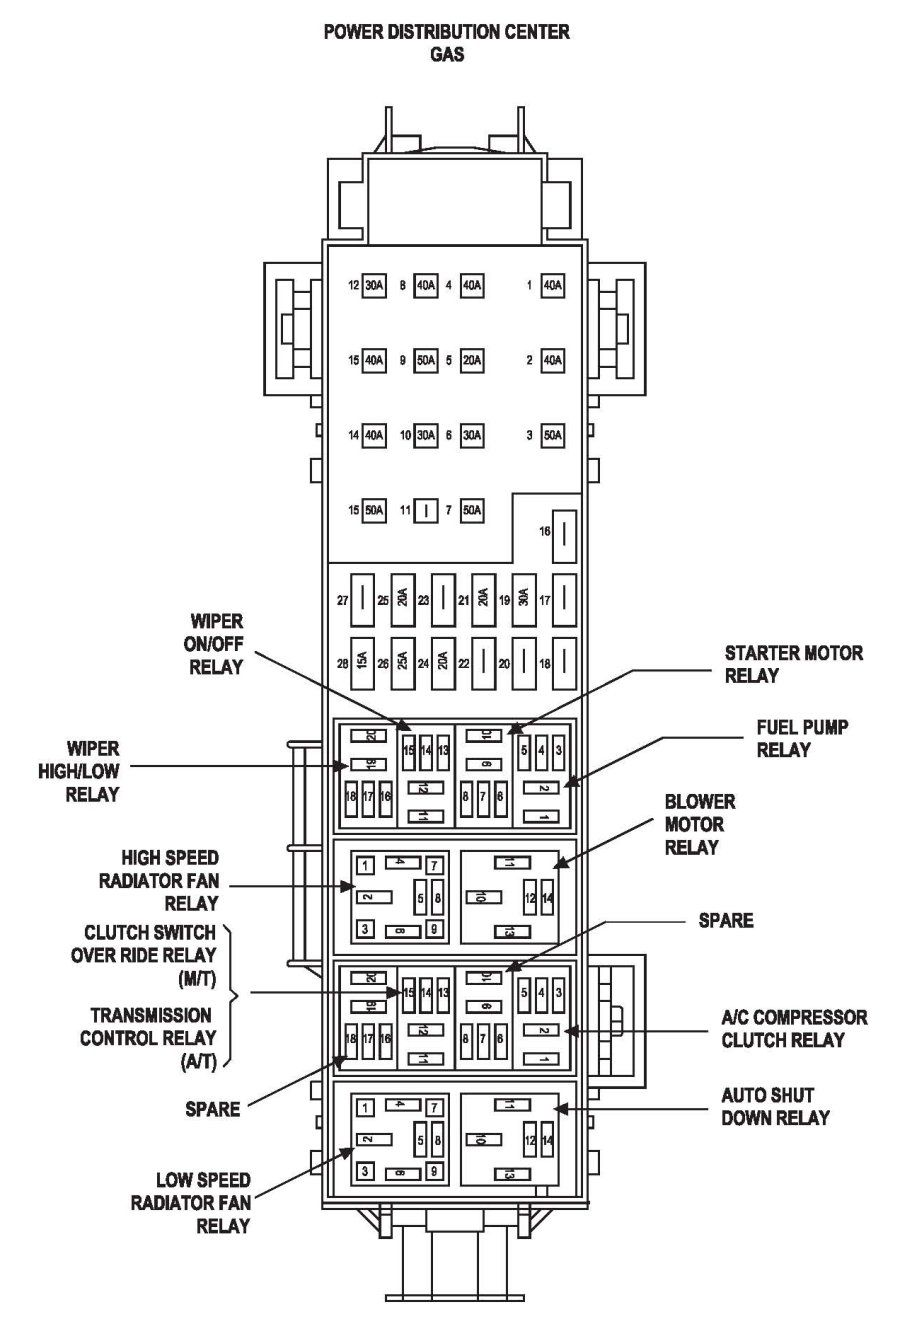 jeep liberty fuse box diagram image details jeep liberty rh pinterest com jeep renegade fuse diagram jeep xj fuse diagram